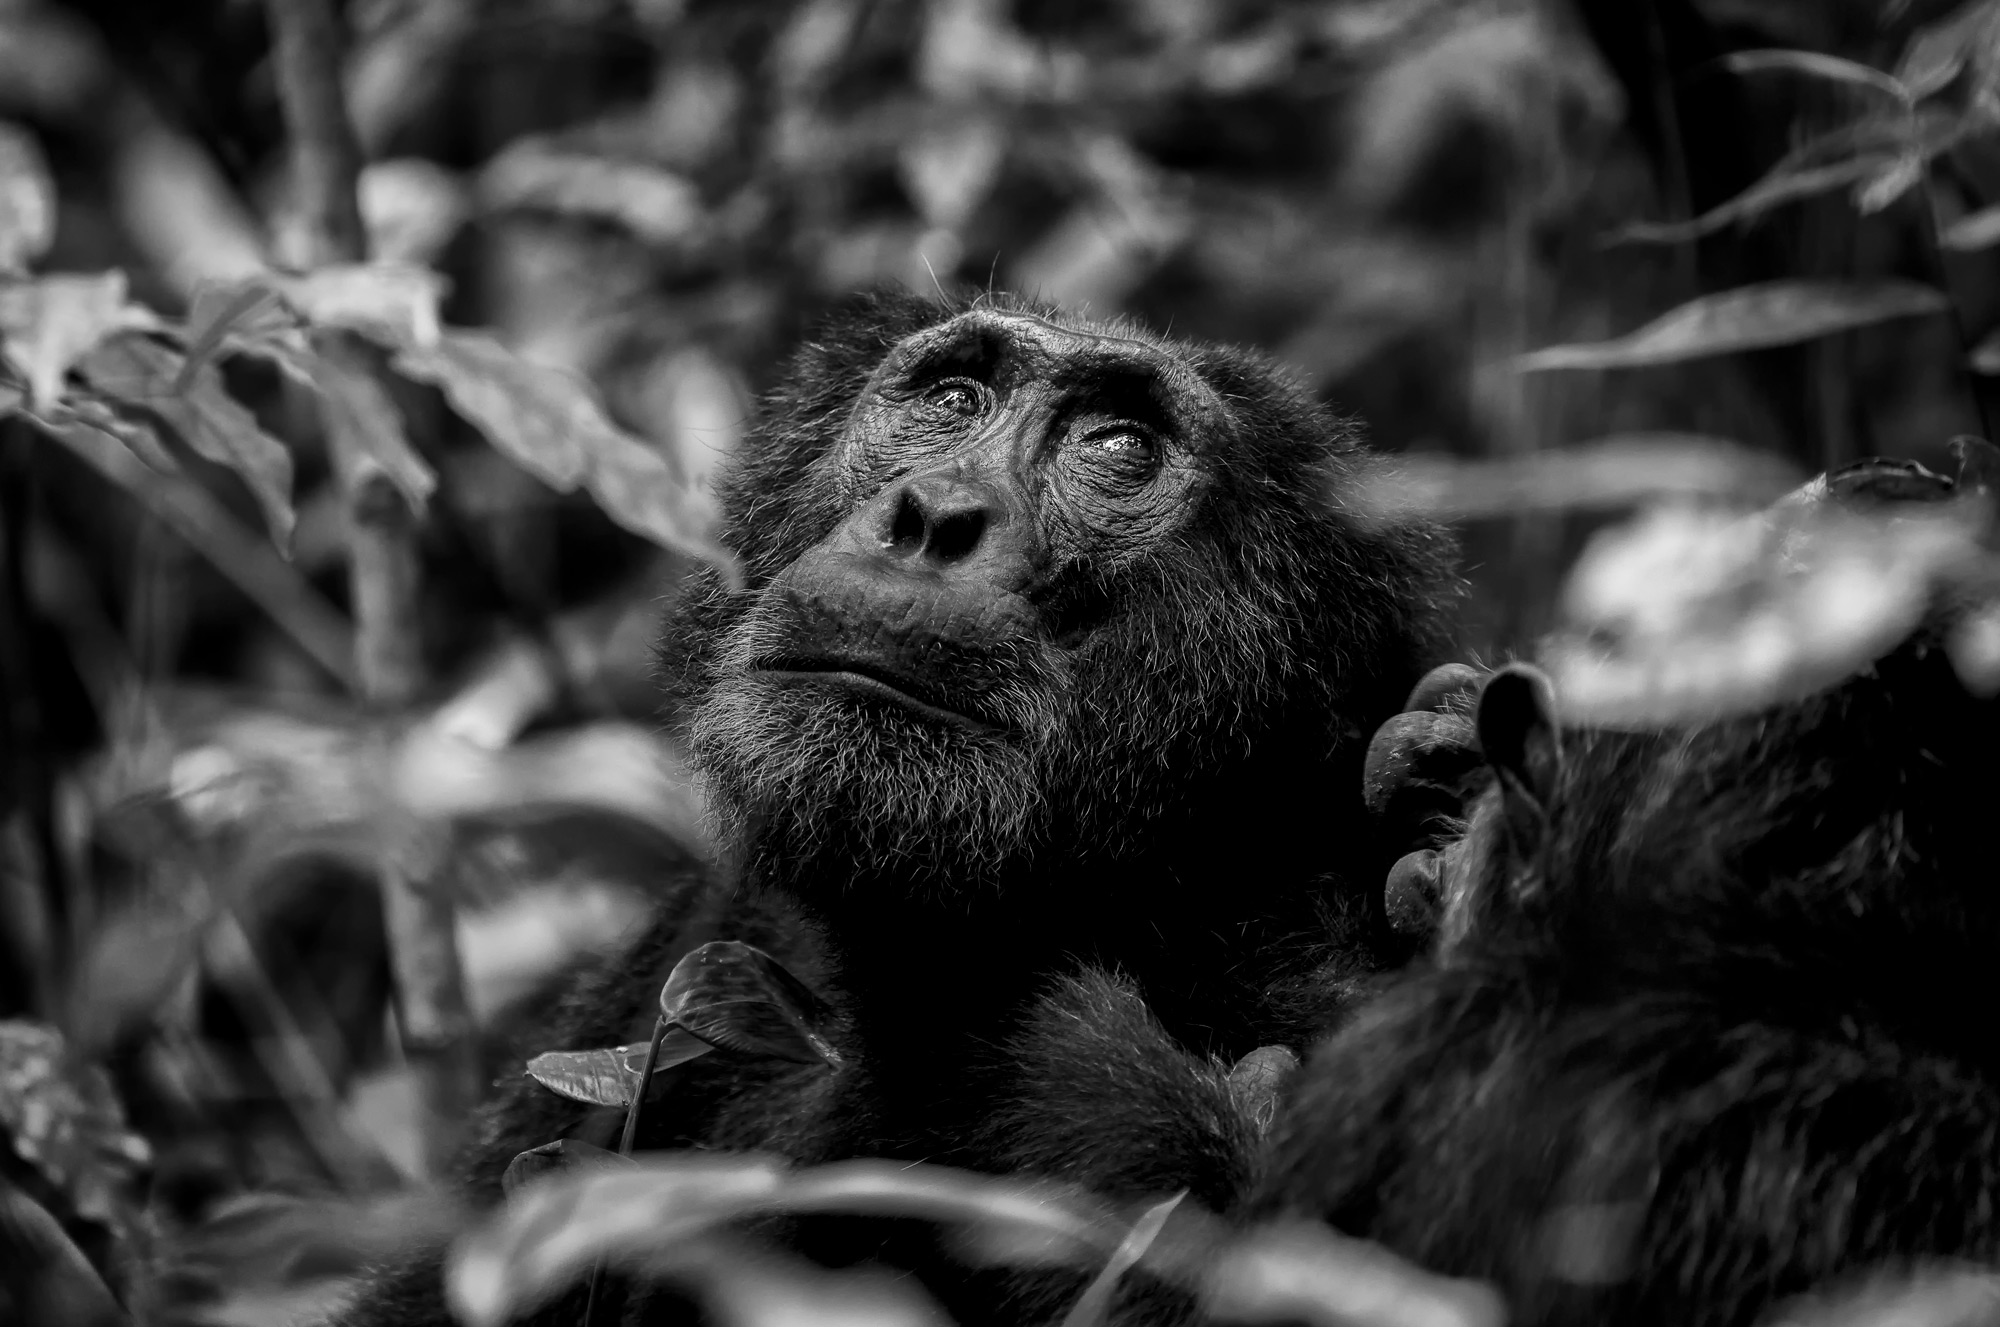 """The wise one"" in Kibale National Park, Uganda © Prelena Soma Owen (Photographer of the Year 2018 Finalist)"